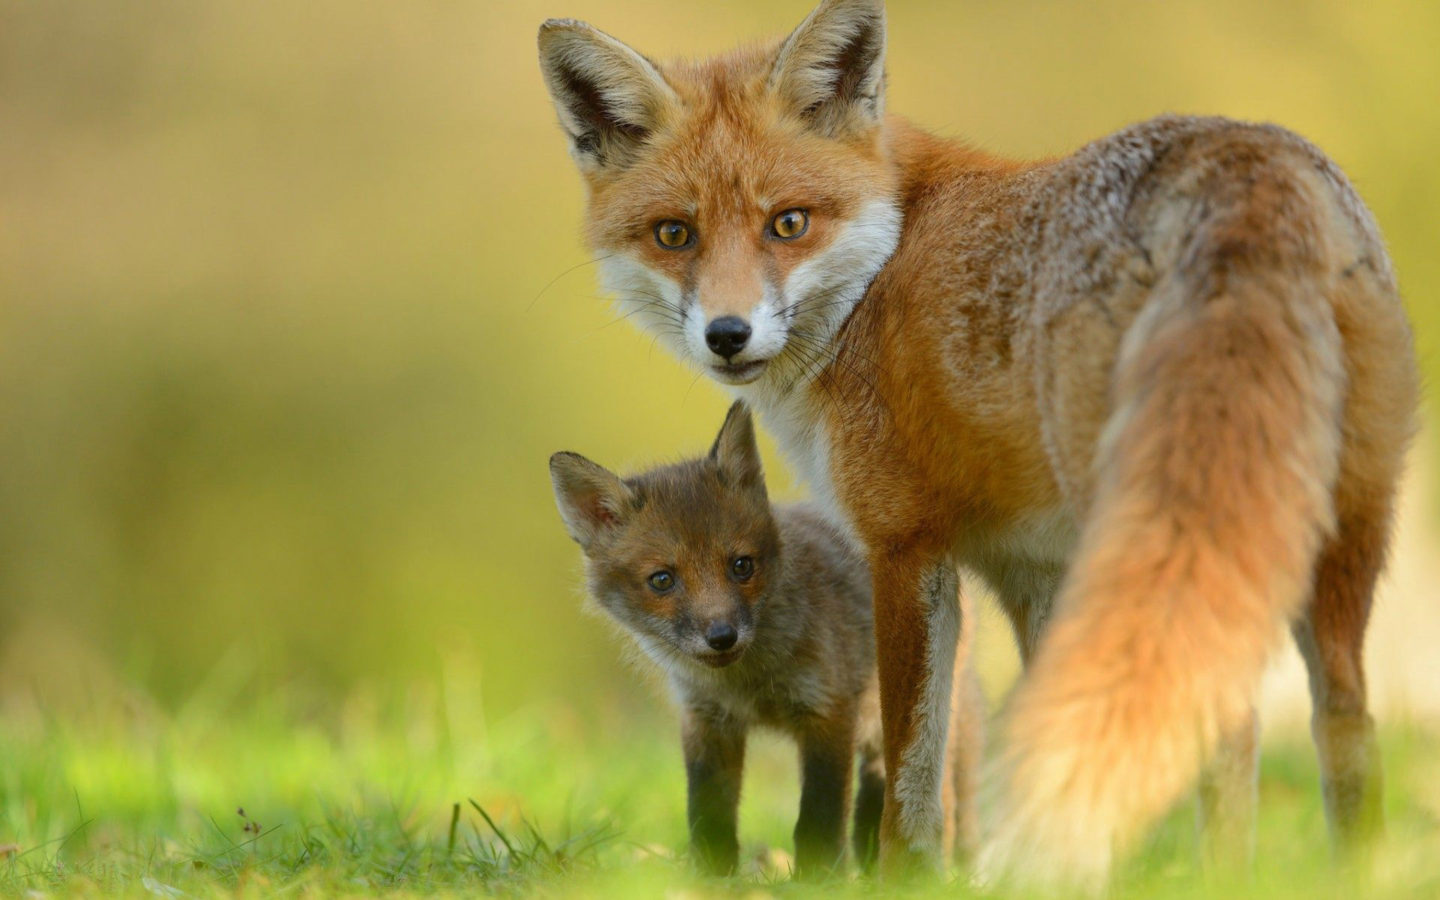 Hd Wallpapers Fire Cars Red Fox Amp Cute Little Fox Hd Wallpaper Wallpapers13 Com